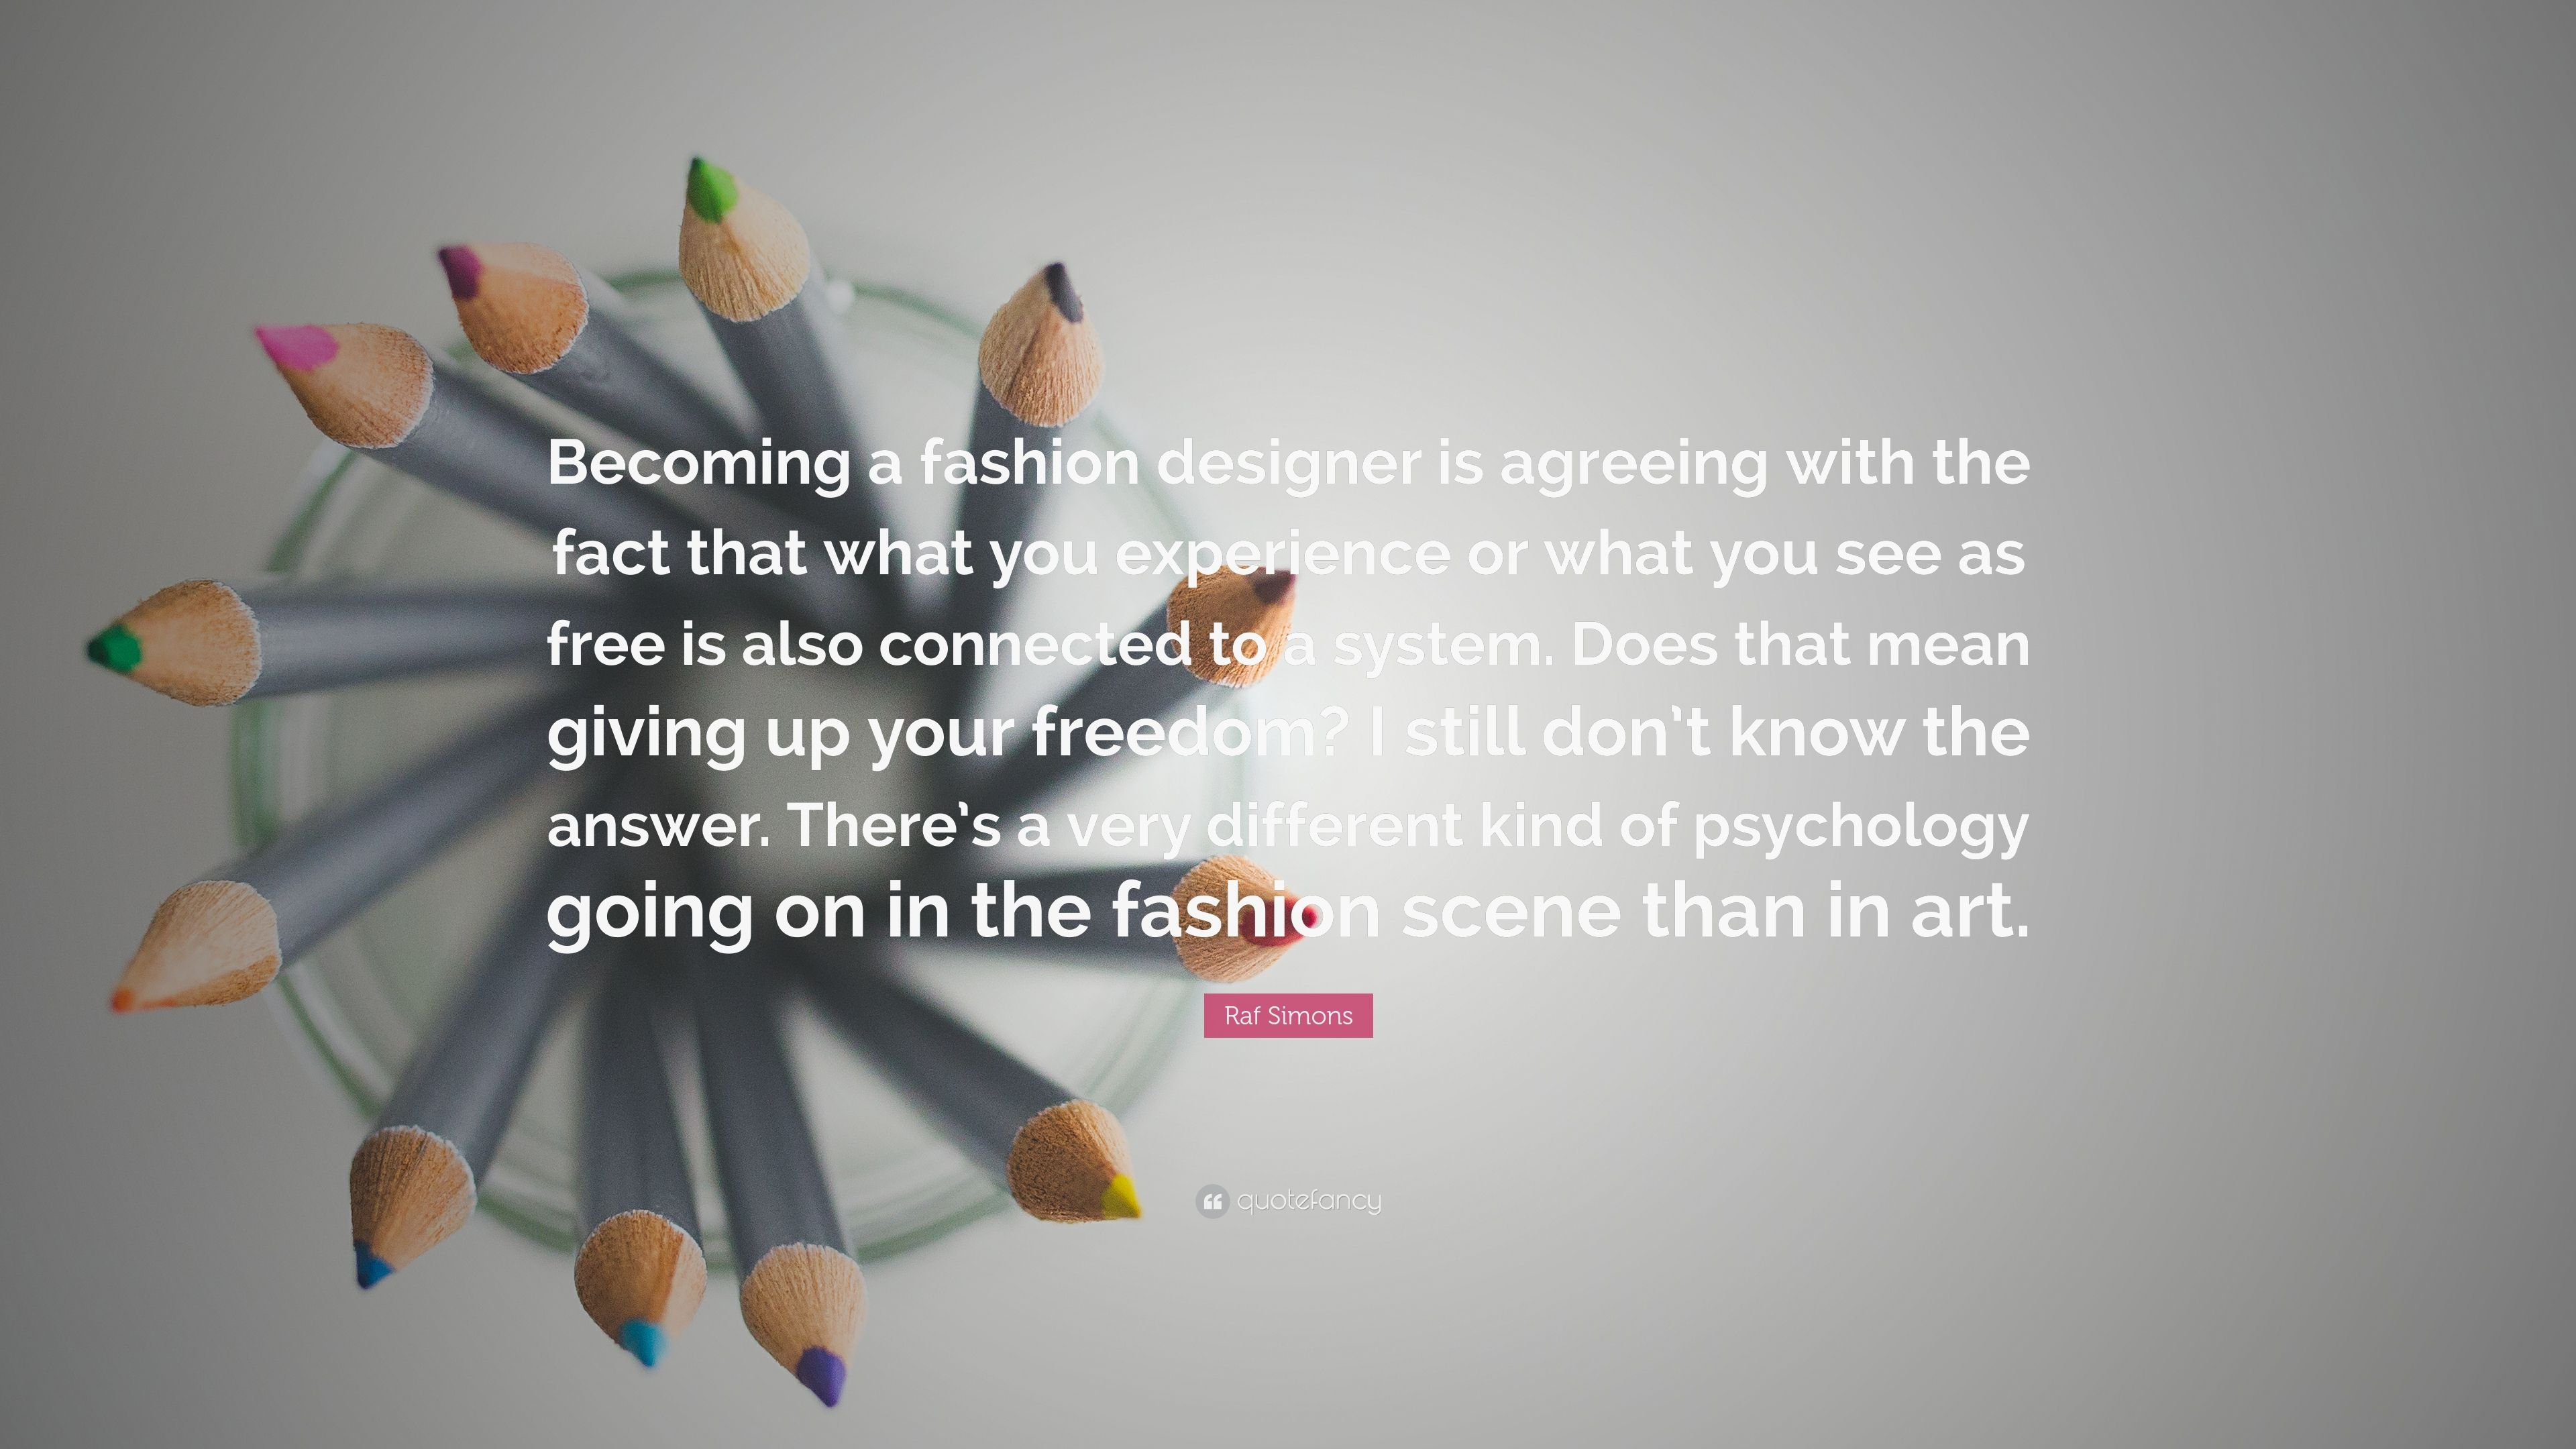 Raf Simons Quote Becoming A Fashion Designer Is Agreeing With The Fact That What You Experience Or What You See As Free Is Also Connected 7 Wallpapers Quotefancy